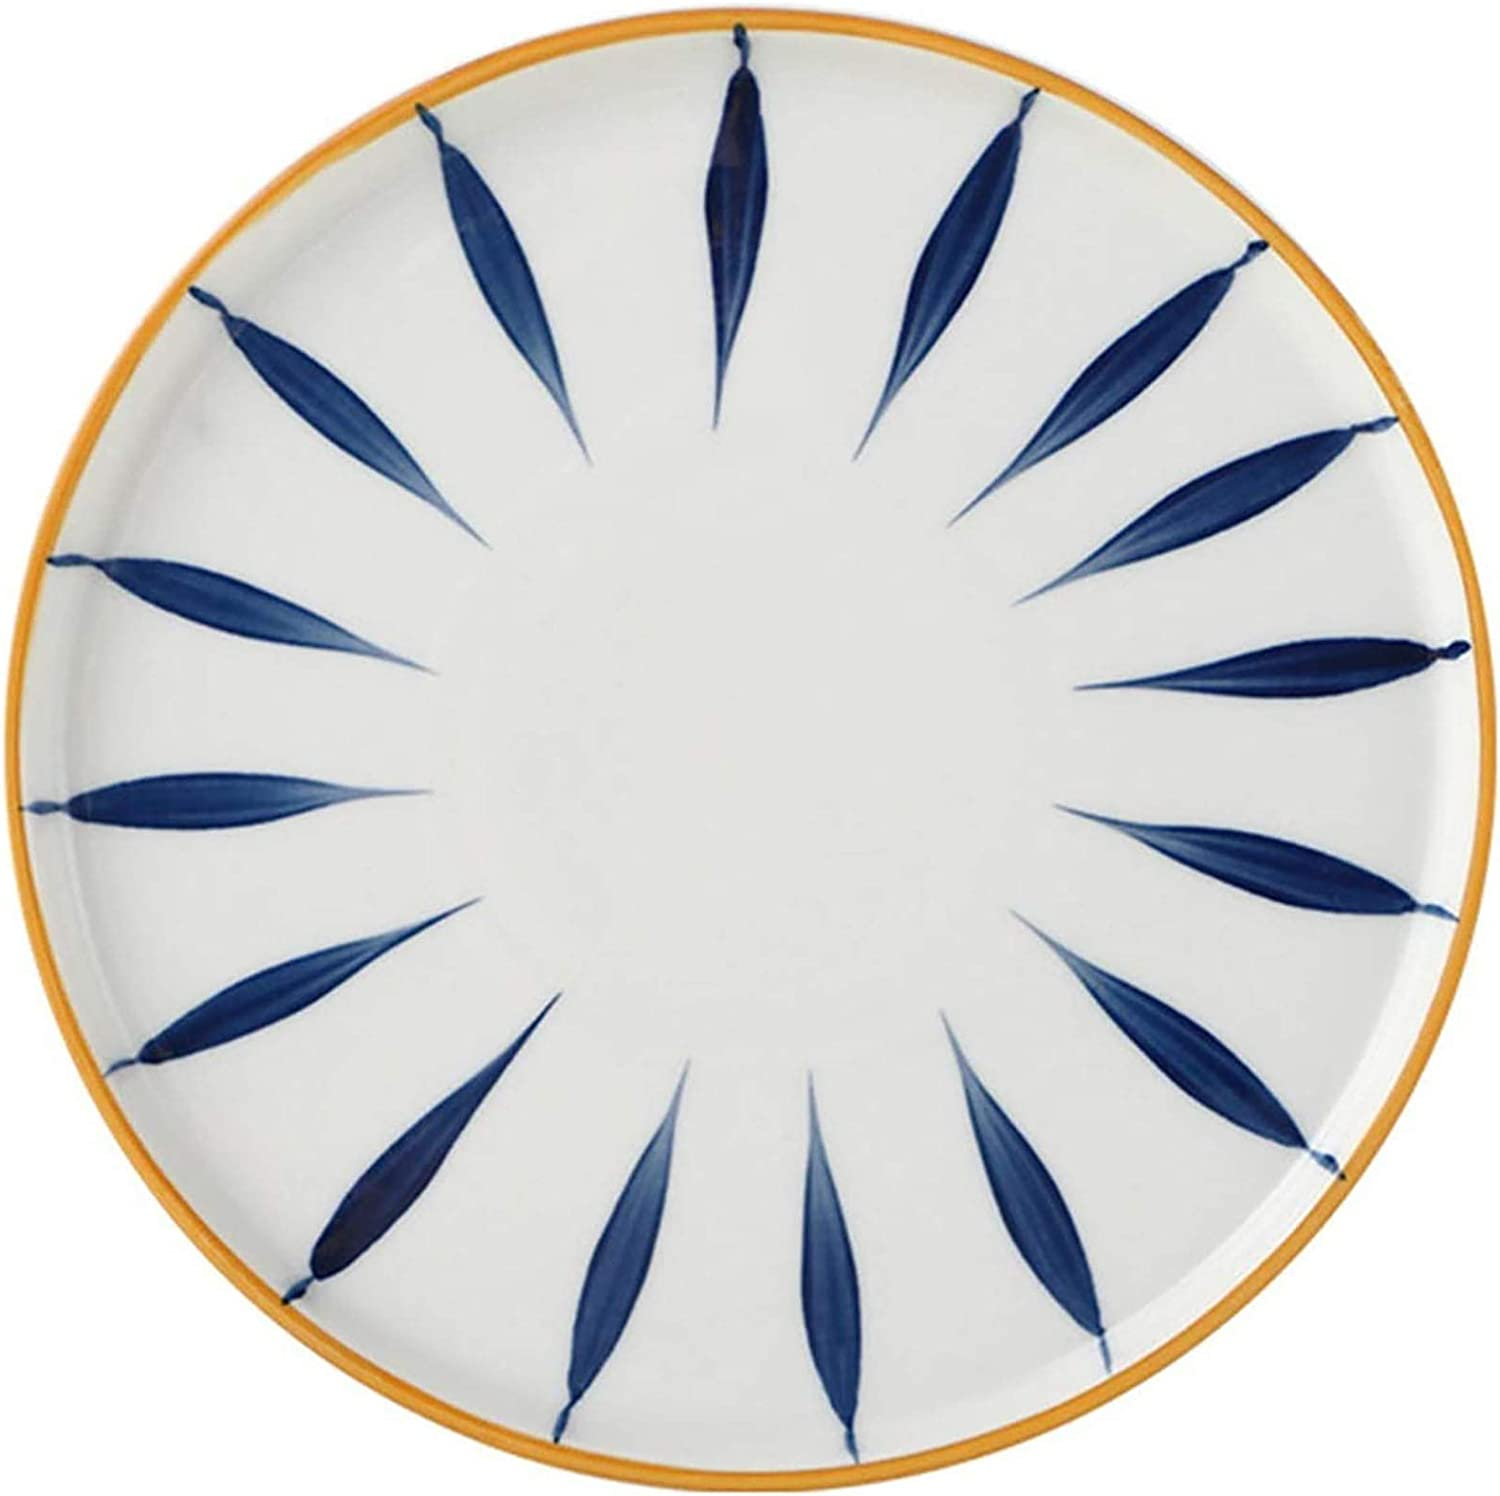 Outstanding WDZJM Dinner plate Japanese-style hand-painted personalized Outstanding dee